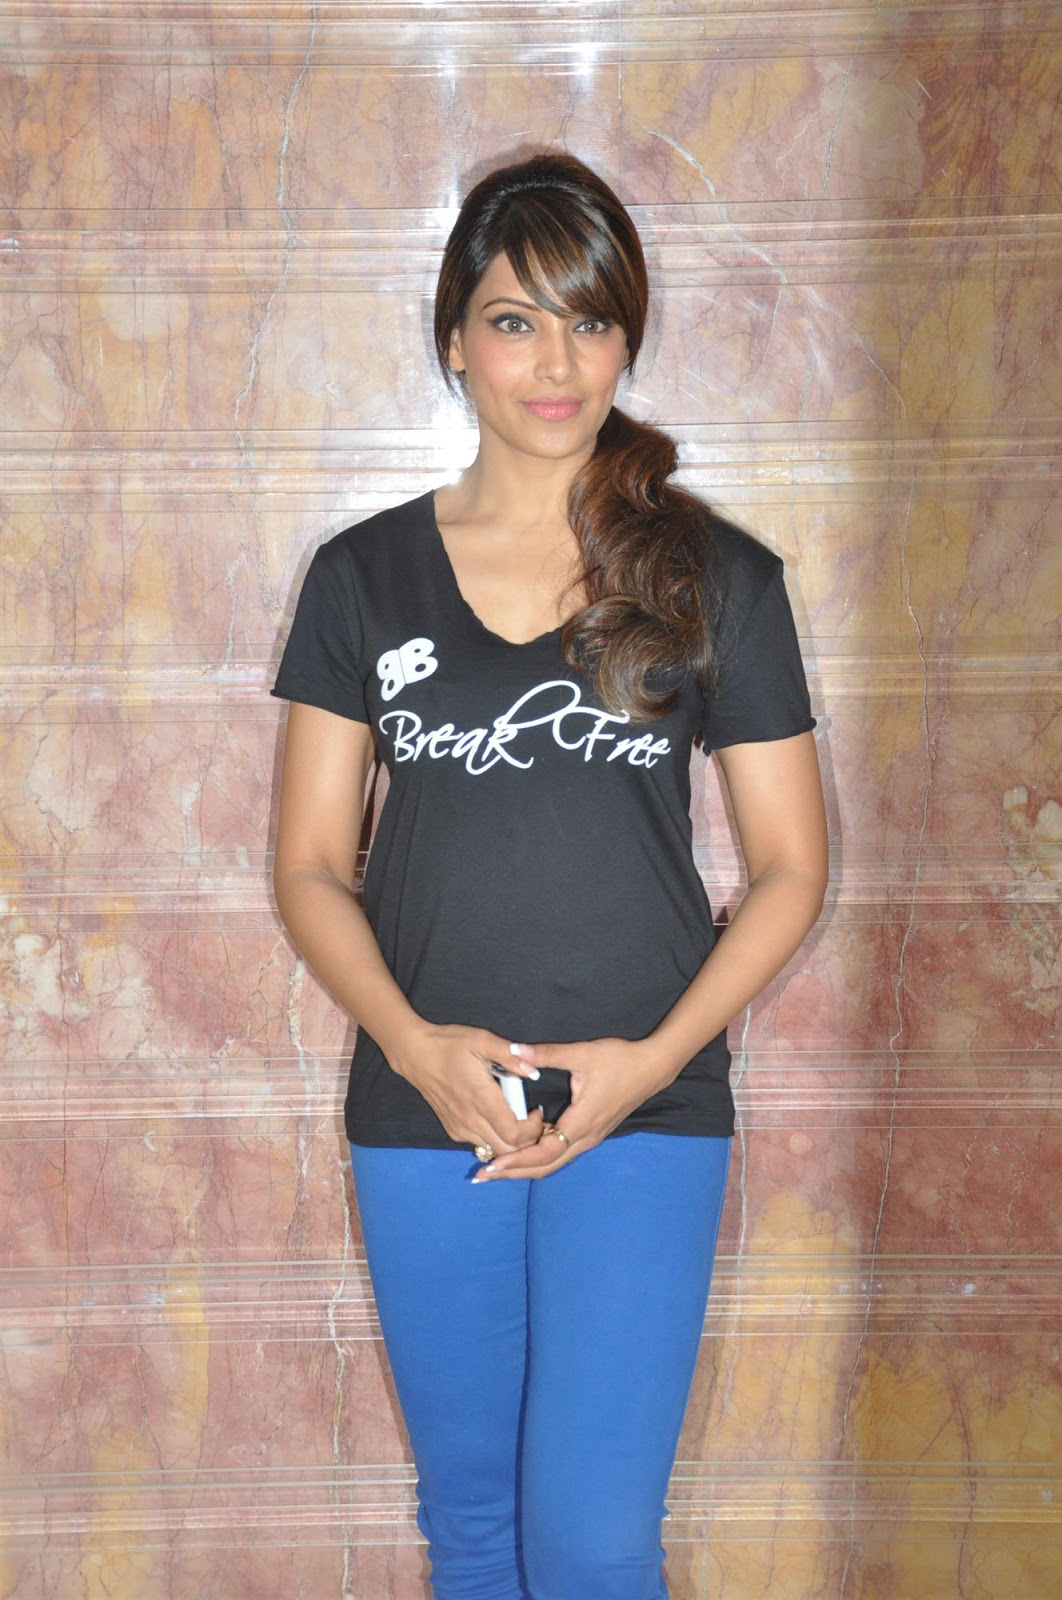 Bipasha Basu at Her DVD Break Free Event at Radio City FM Studio ...